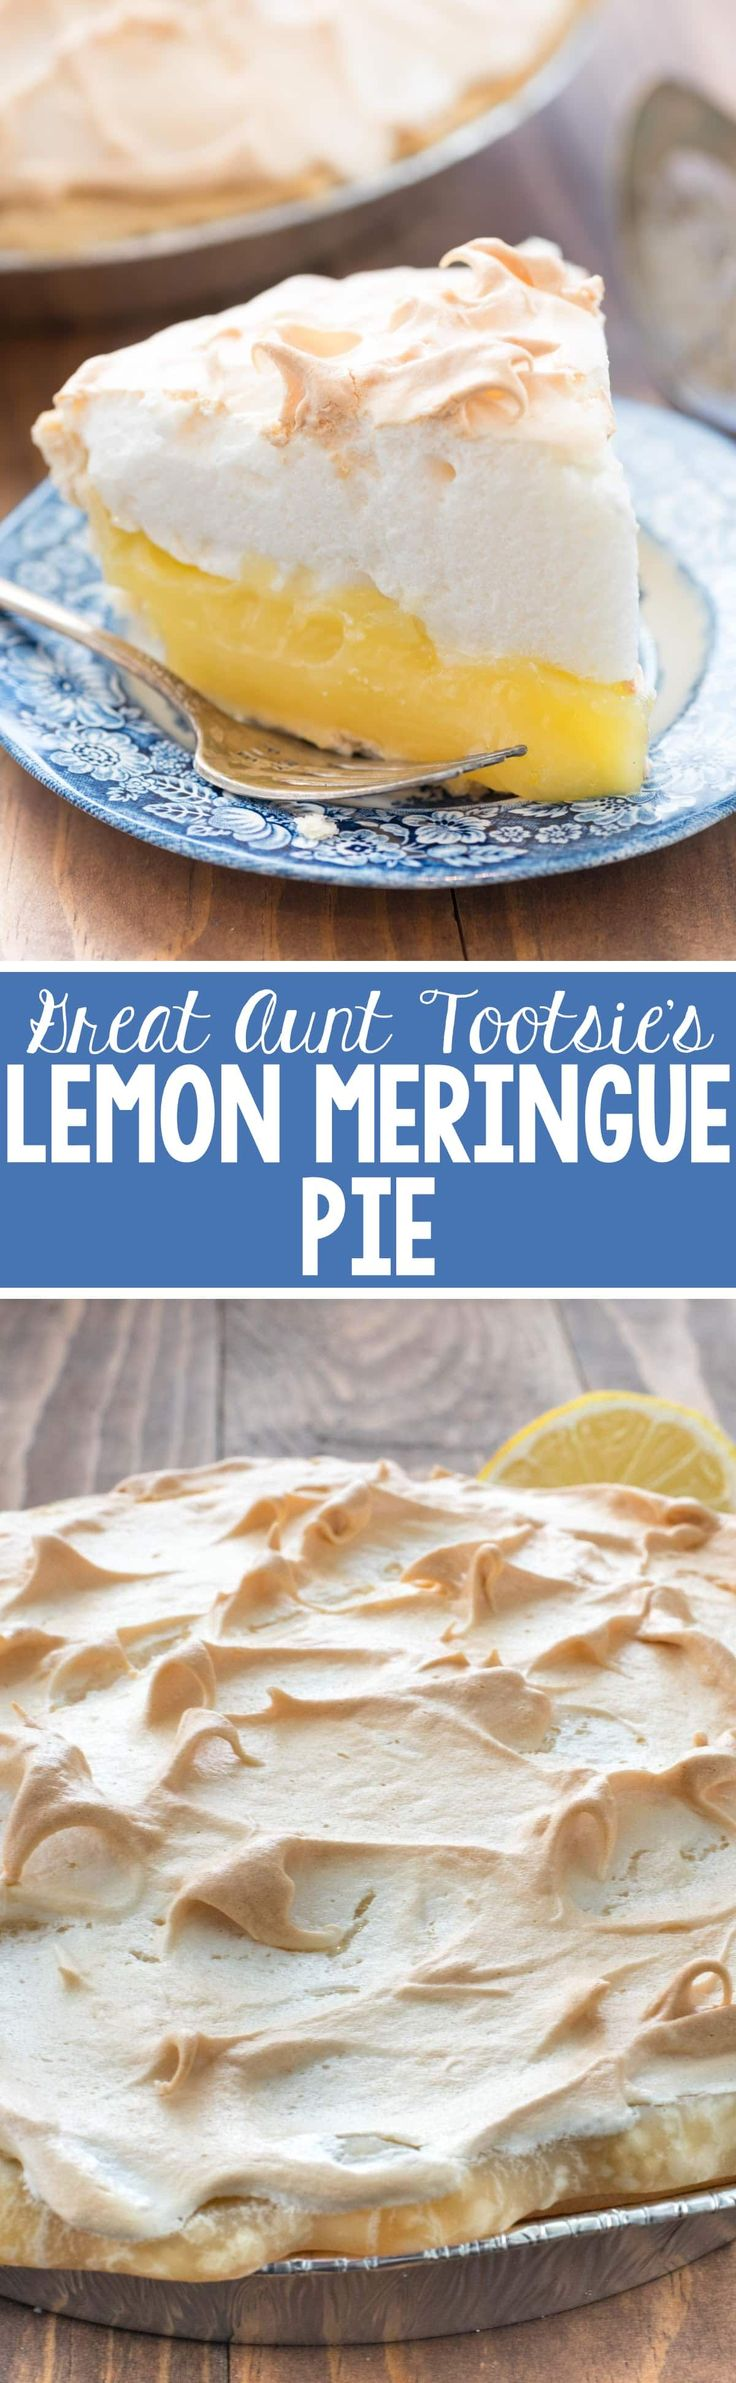 Aunt Tootsie's Lemon Meringue Pie - this recipe is from my great aunt and it is a family favorite! The lemon is sweet and tart and the pie is perfect lemon lovers! via @crazyforcrust